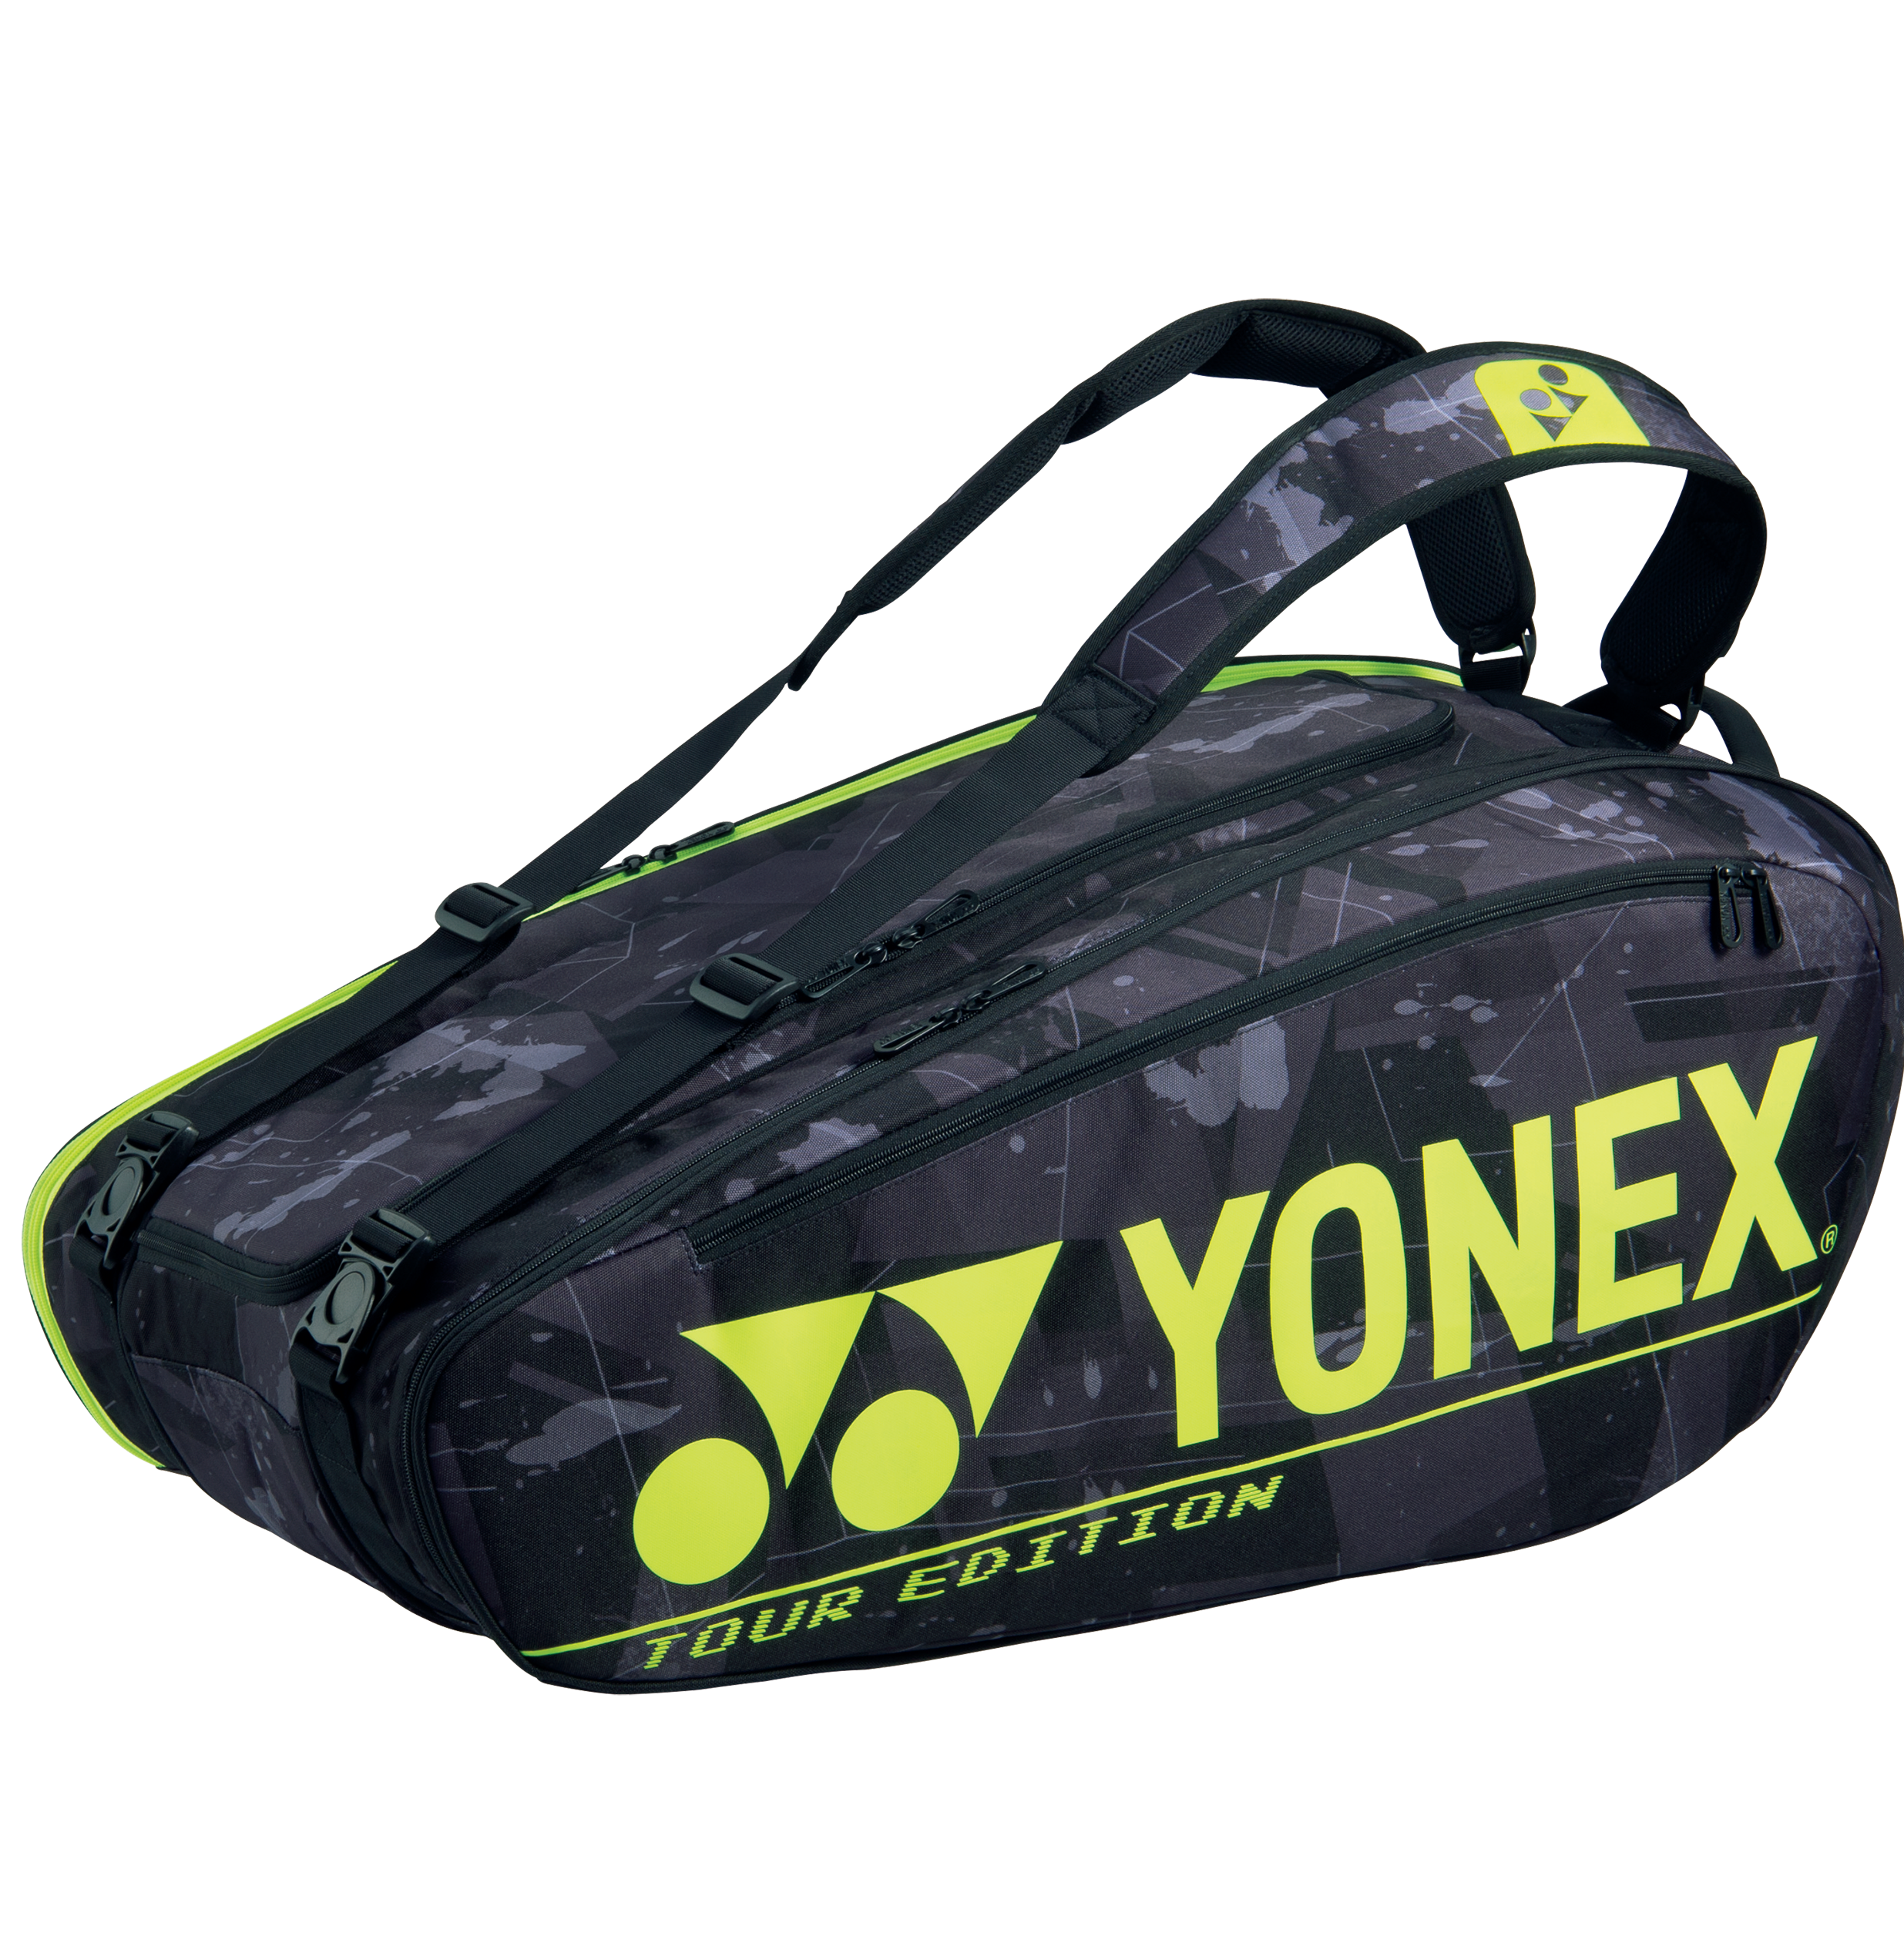 YONEX 9 Tennis/12+ Badminton Racquet Pro Thermal Bag BA92029EX Black/Yellow, 2021 New